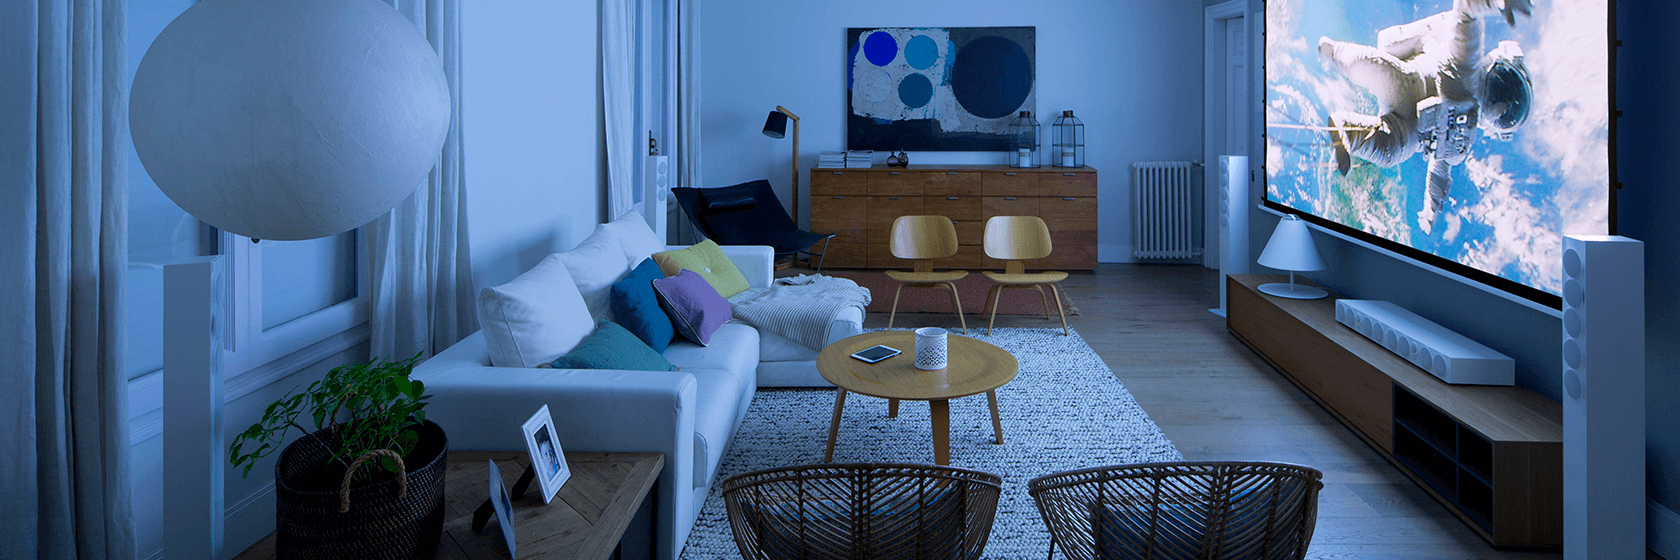 Incorporate the new technologies at home | The Room Studio